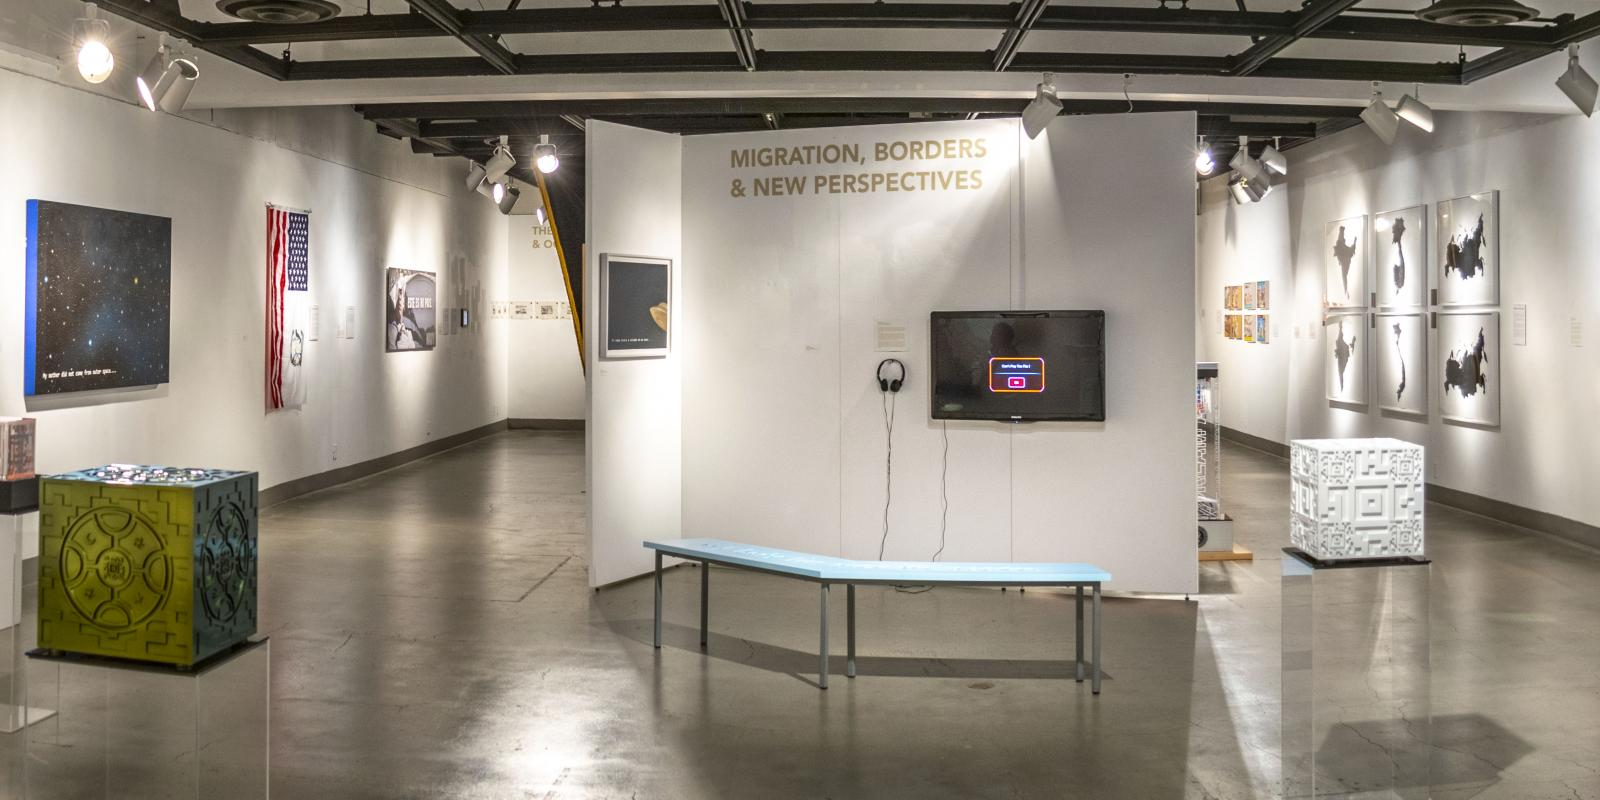 Back eastside view of the gallery, Exhibition: Somewhere In Between, Nov 6, 2018 - Mar 17, 2019,  Co-curated by Michele Cairella Fillmore & Bia Gayotto, W. Keith & Janet Kellogg Art Gallery, Cal Poly Pomona.